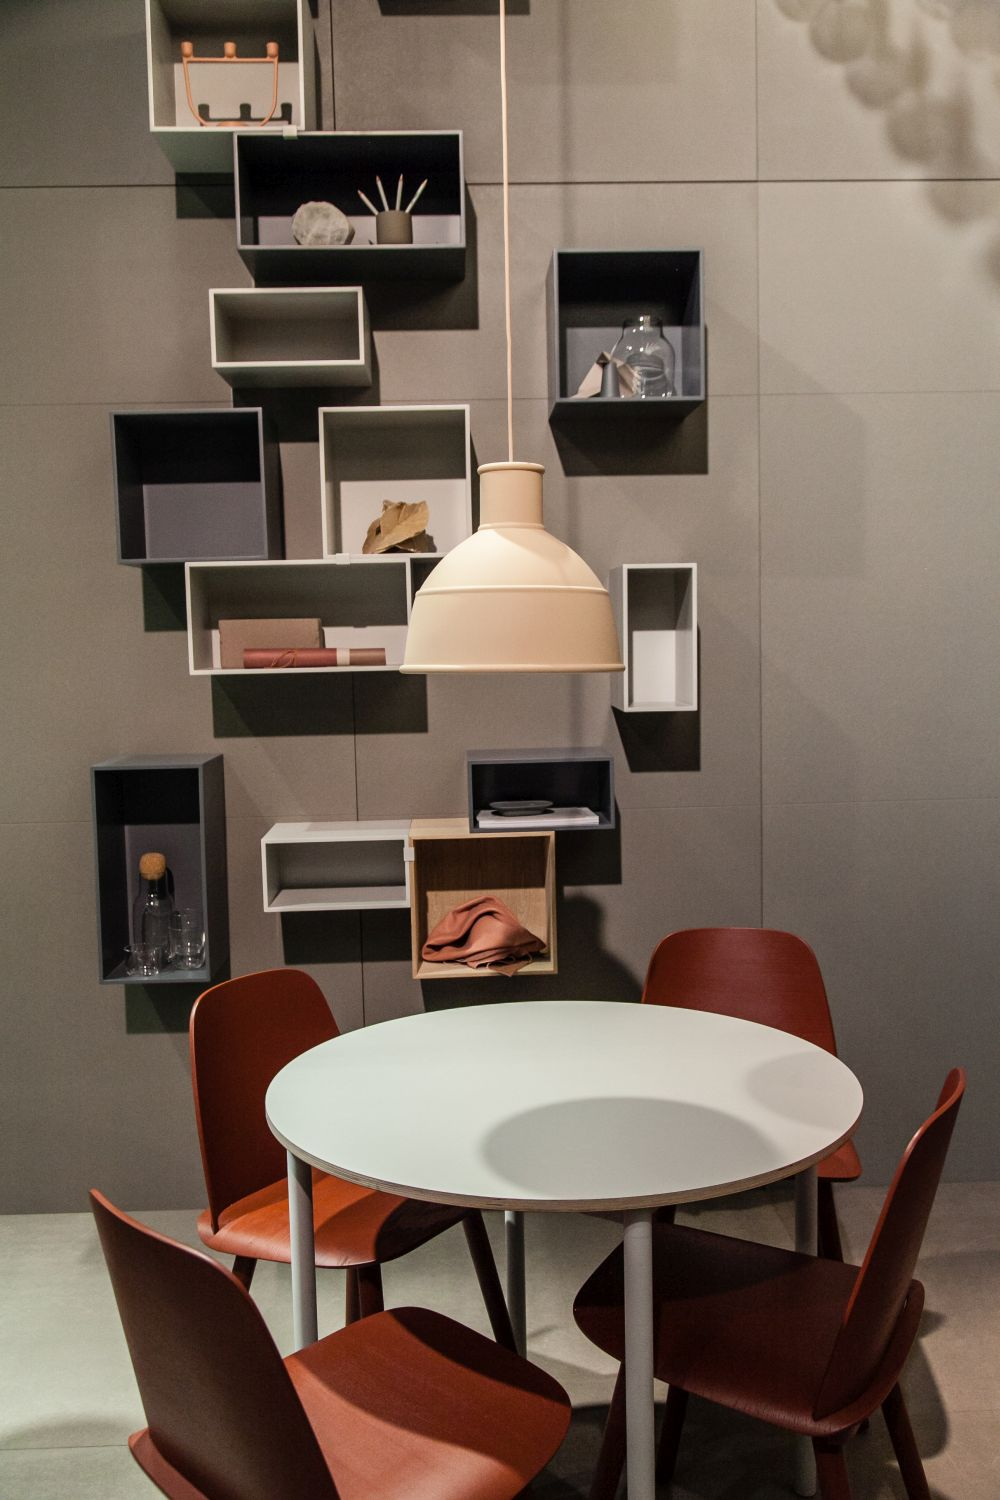 Multiple individual modules put together can be a fun alternative to the regular bookcase unit